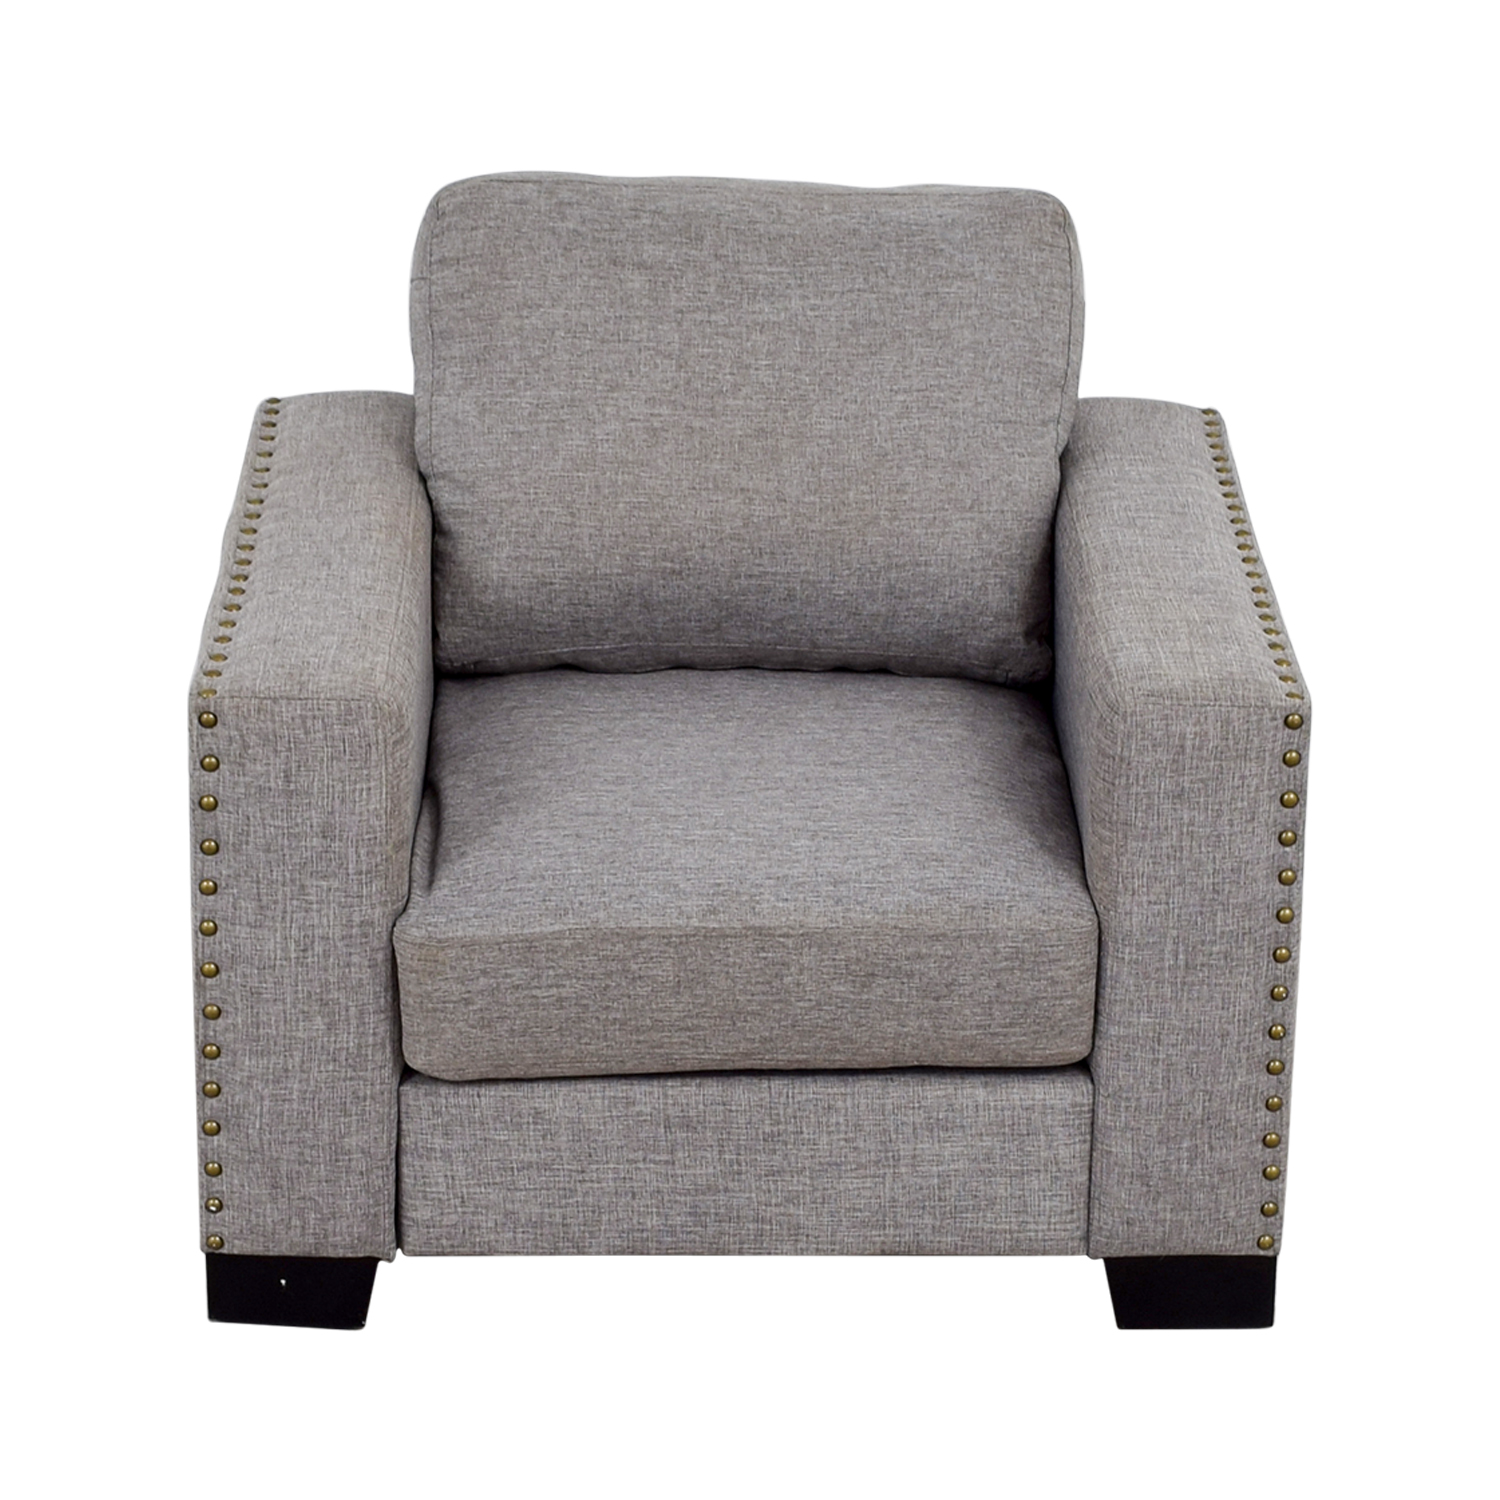 shop Inspire Q Classic Inspire Q Classic Grey Nailhead Track Arm Accent Chair online